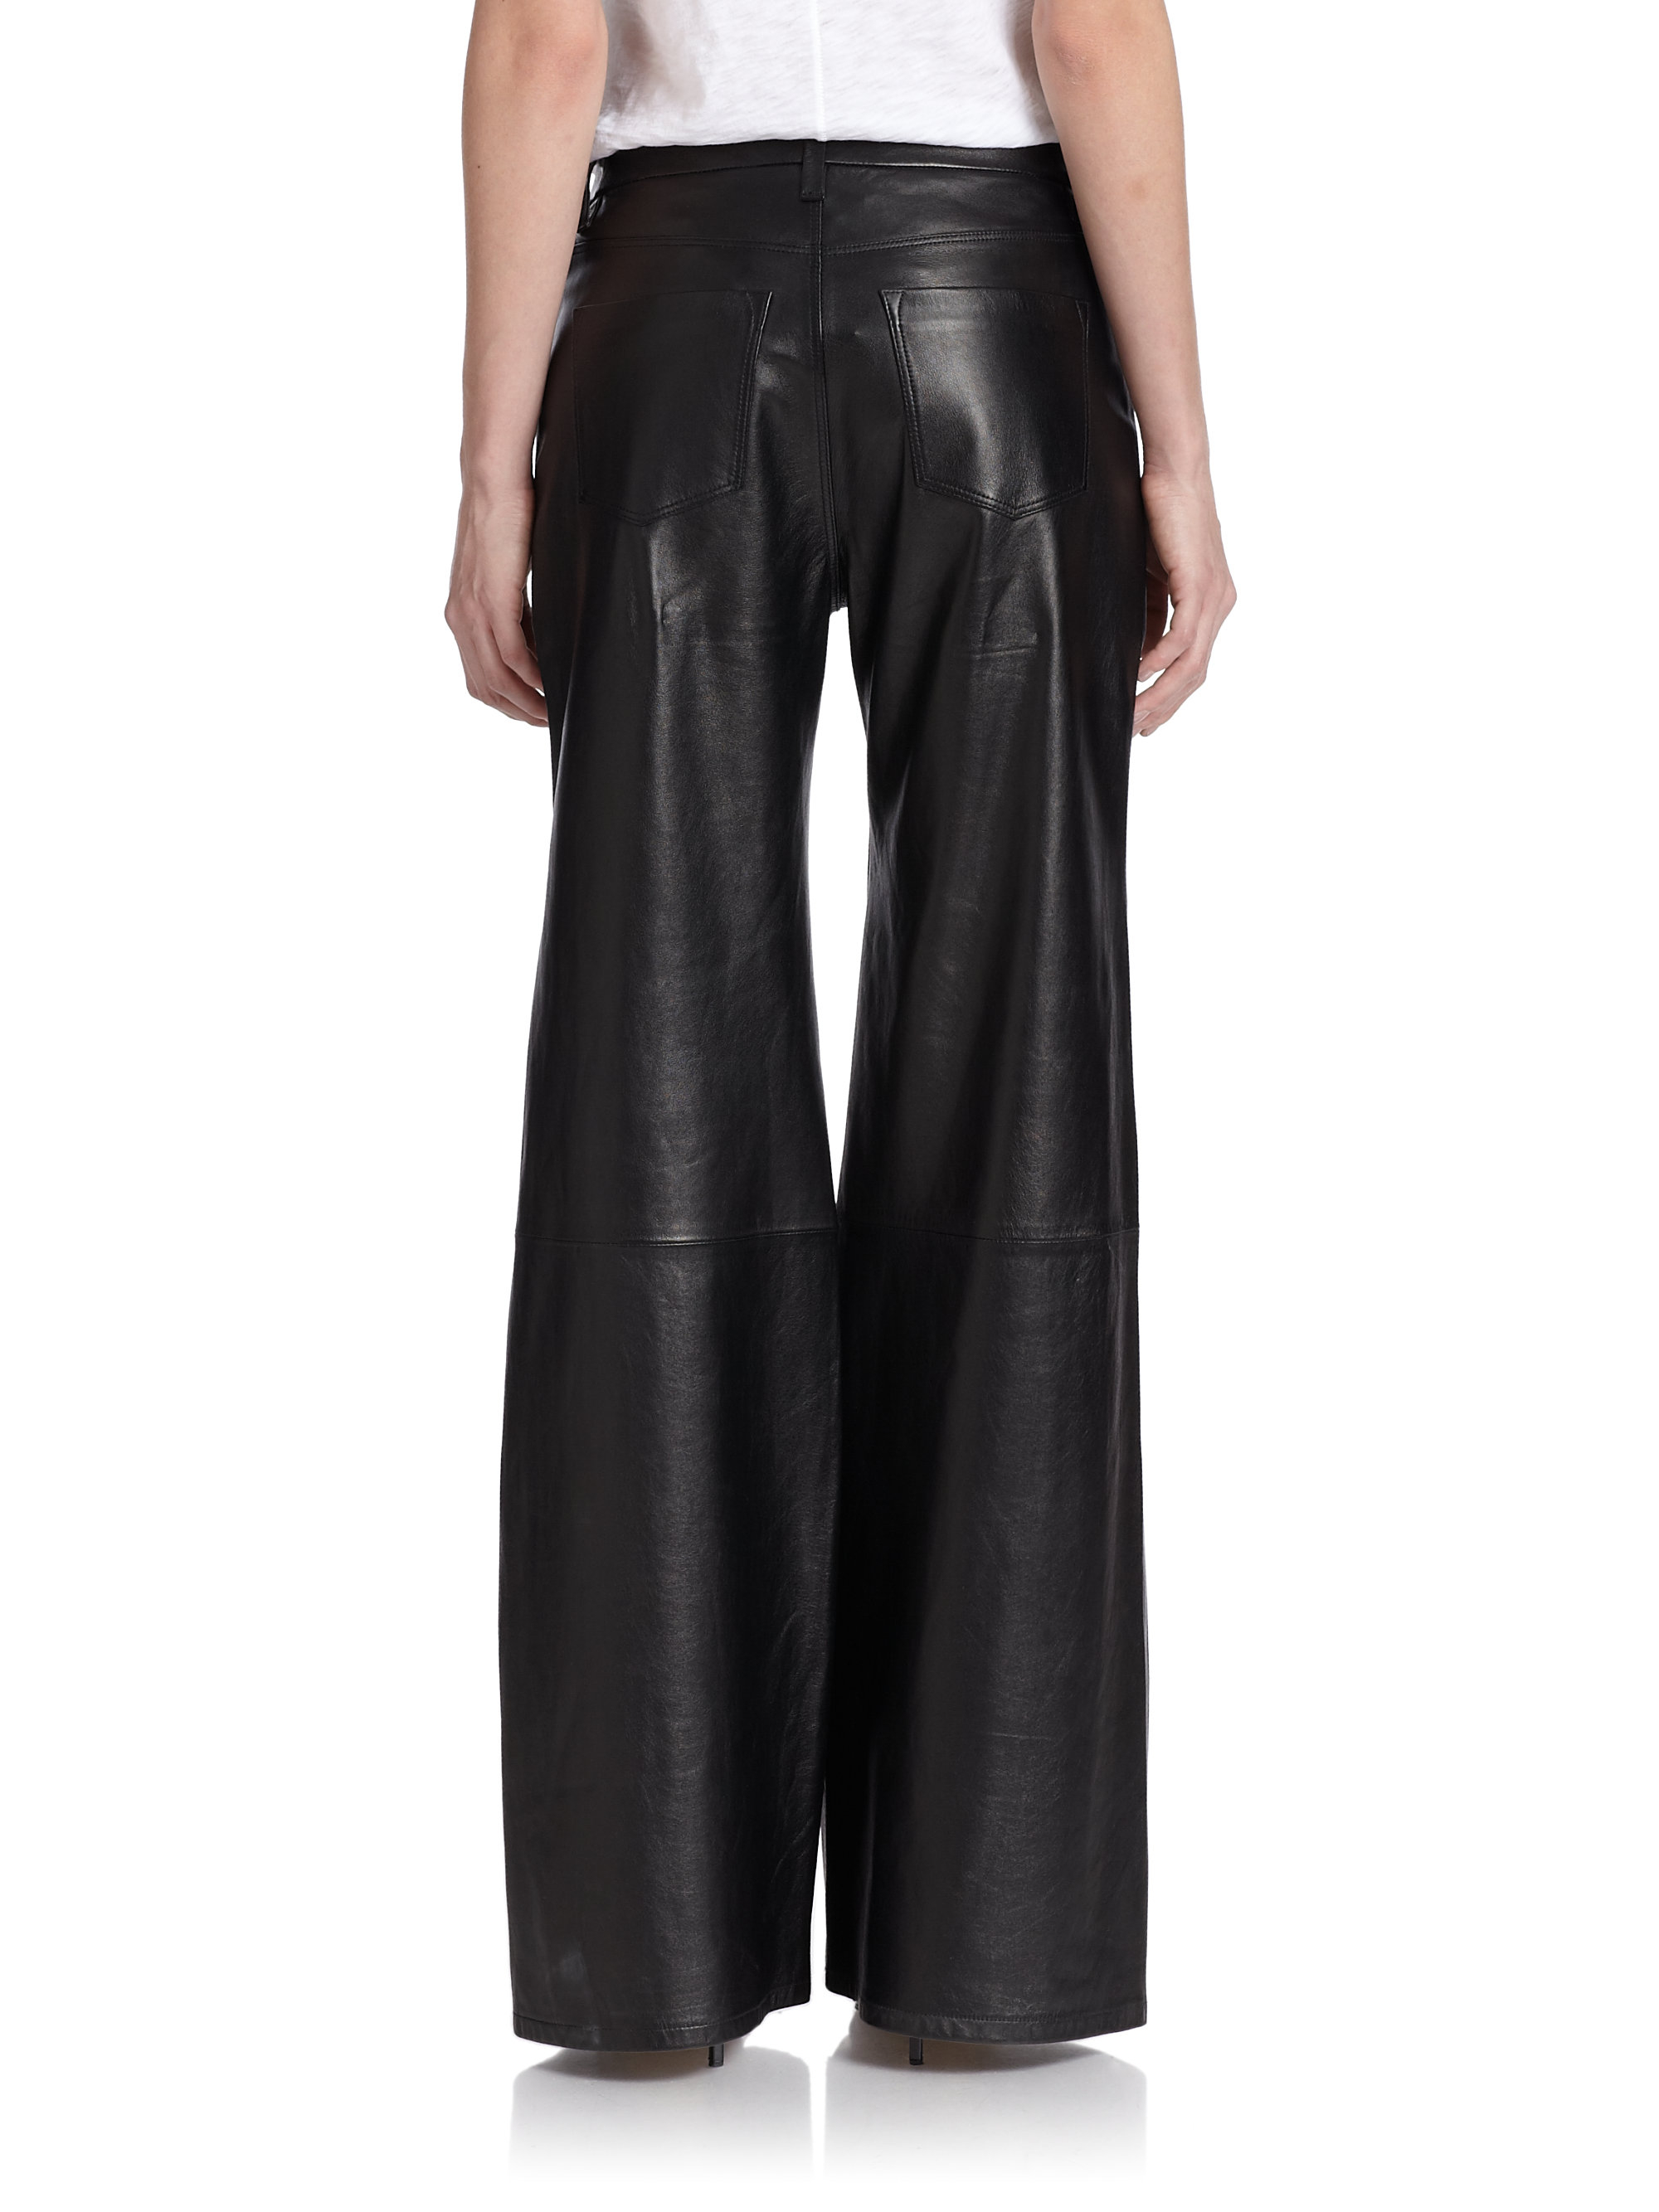 J brand Carine Wide-Leg Leather Pants in Black | Lyst